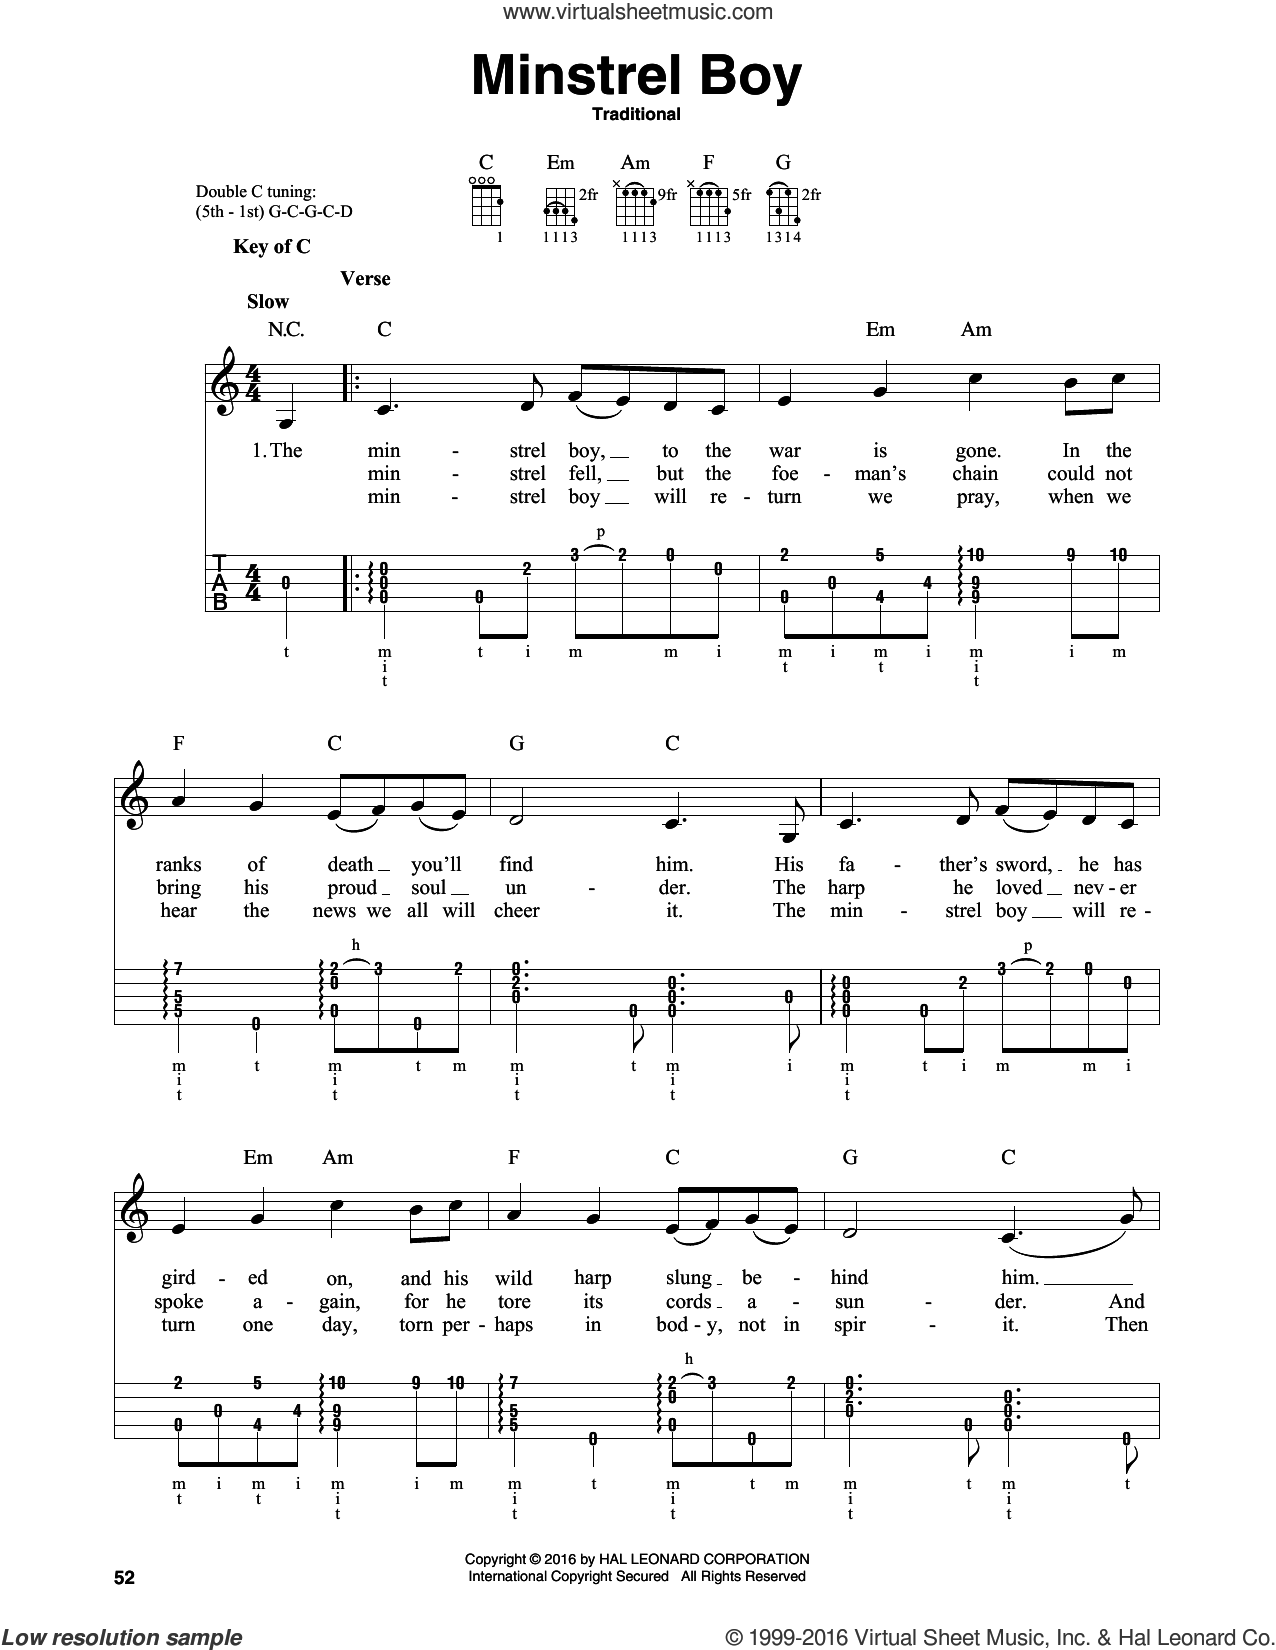 Minstrel Boy sheet music for banjo solo. Score Image Preview.